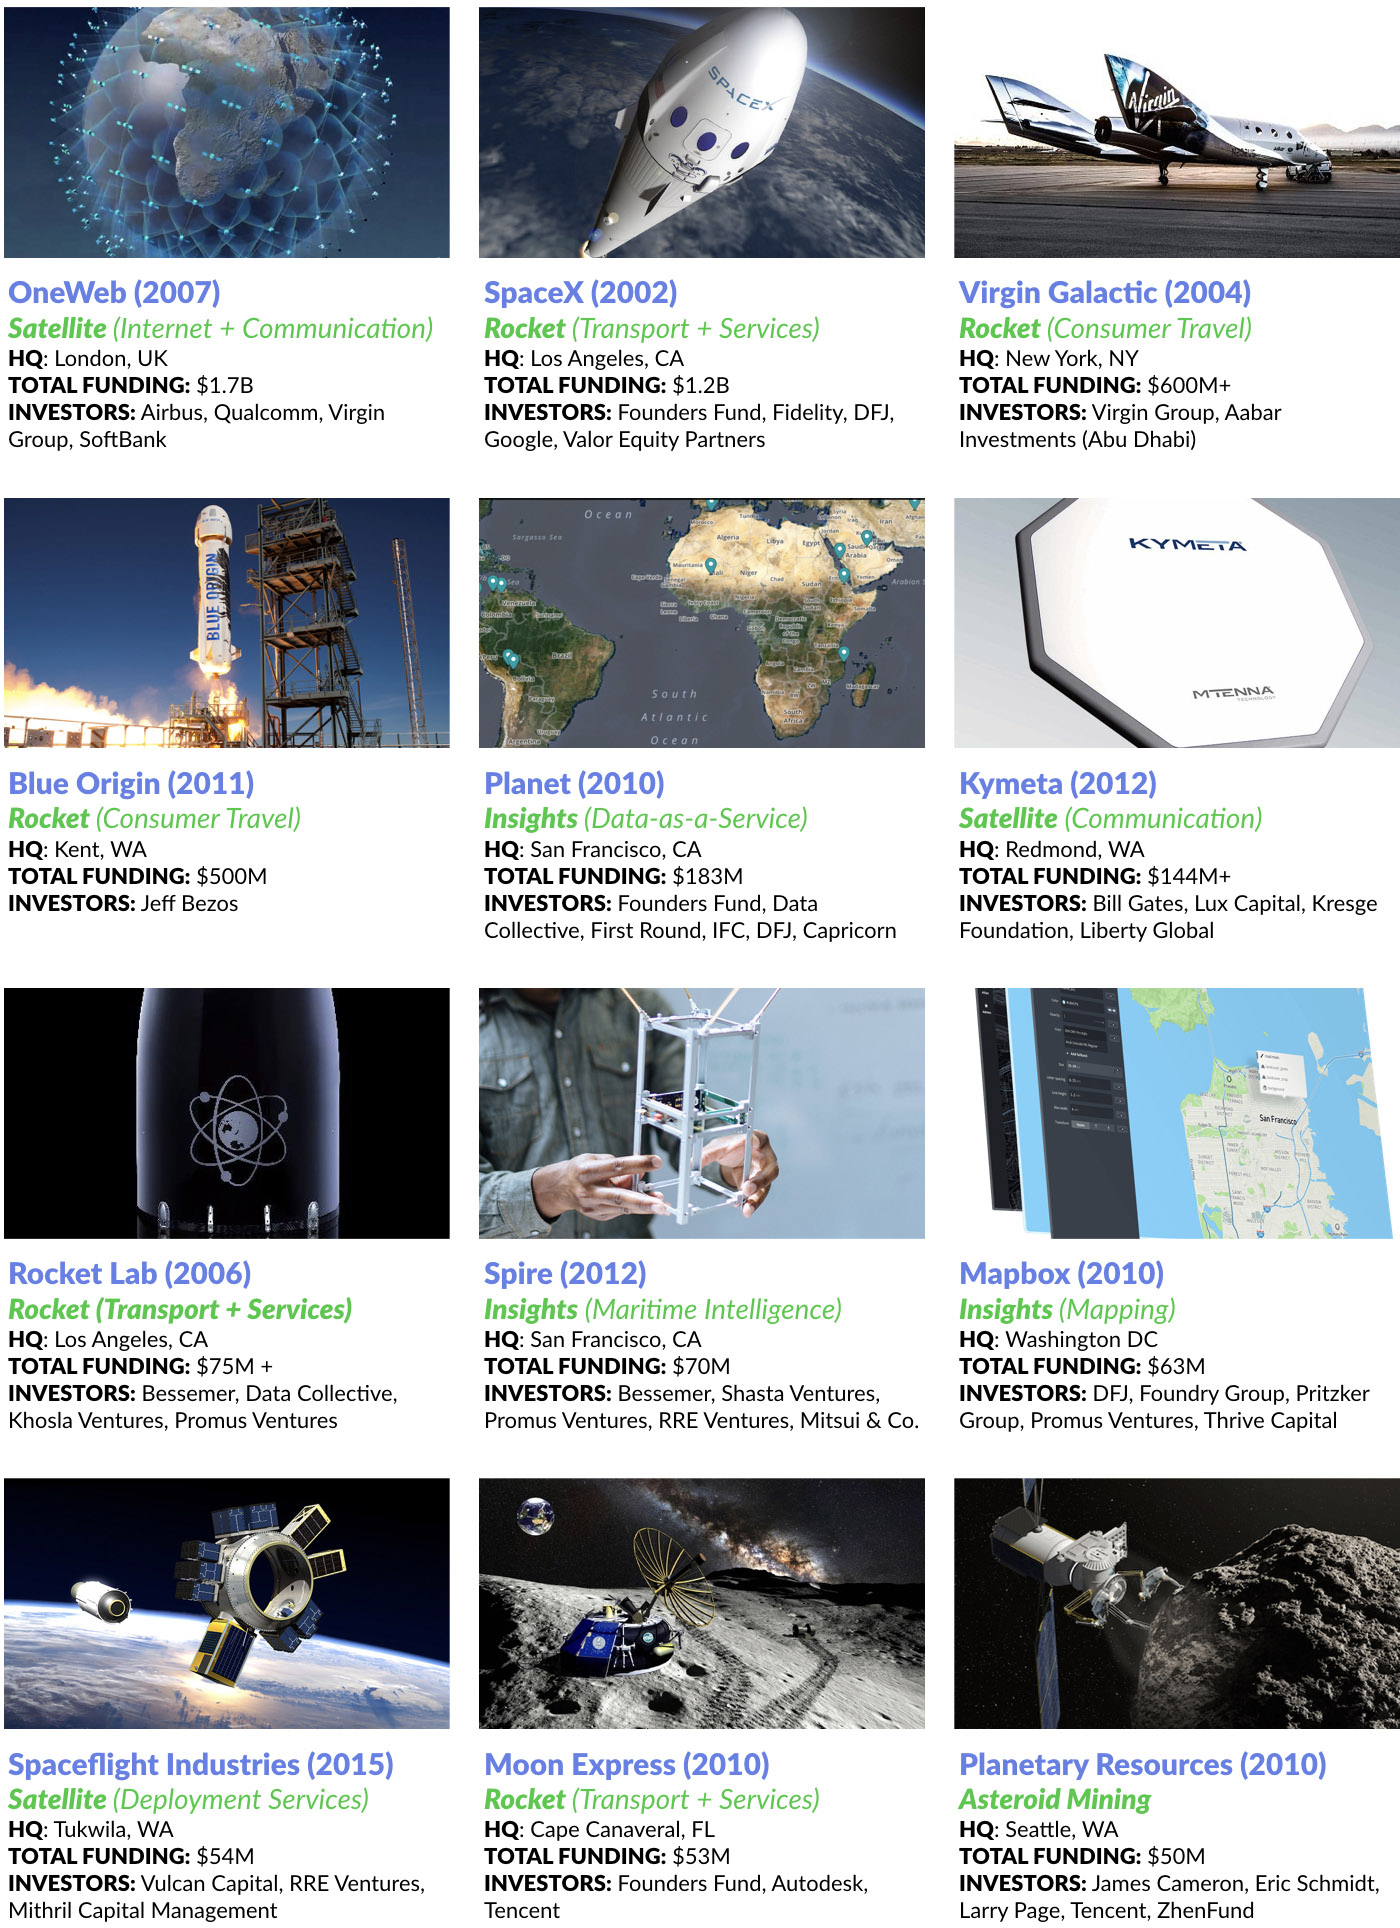 TOP SPACE STARTUPS BY FUNDING RECEIVED